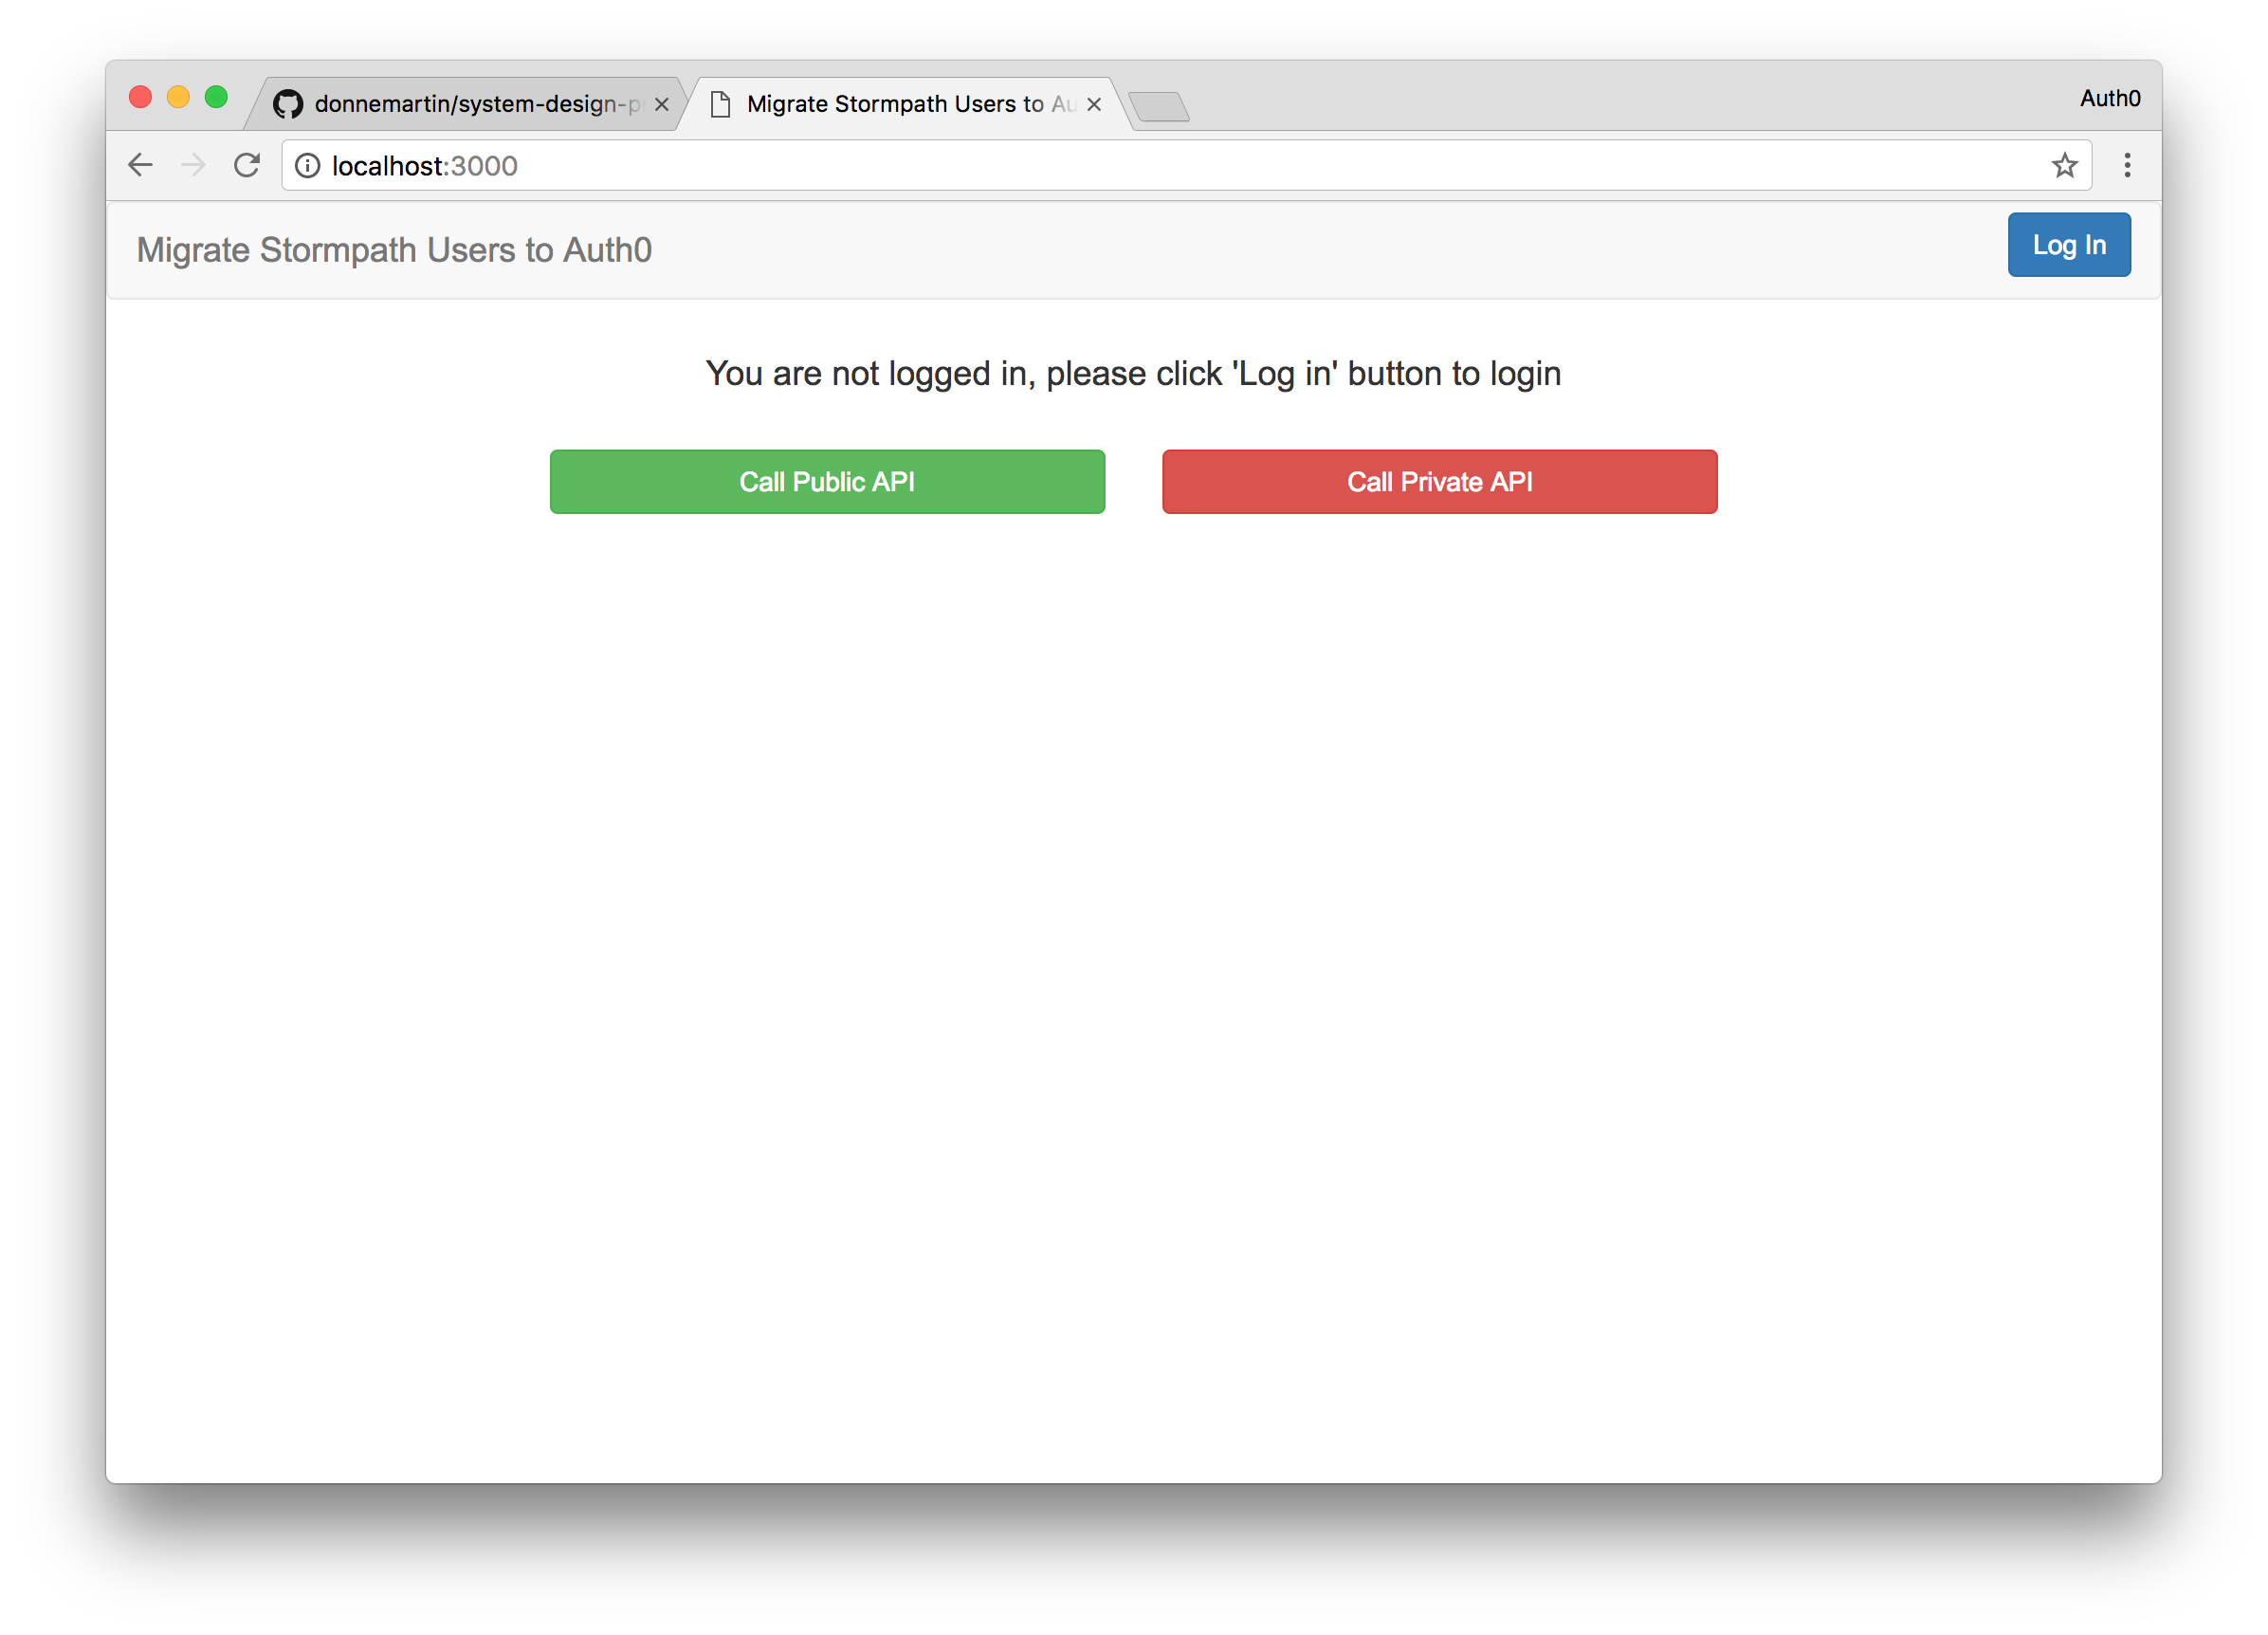 Easily Migrate Your Existing Users to Auth0 — SitePoint